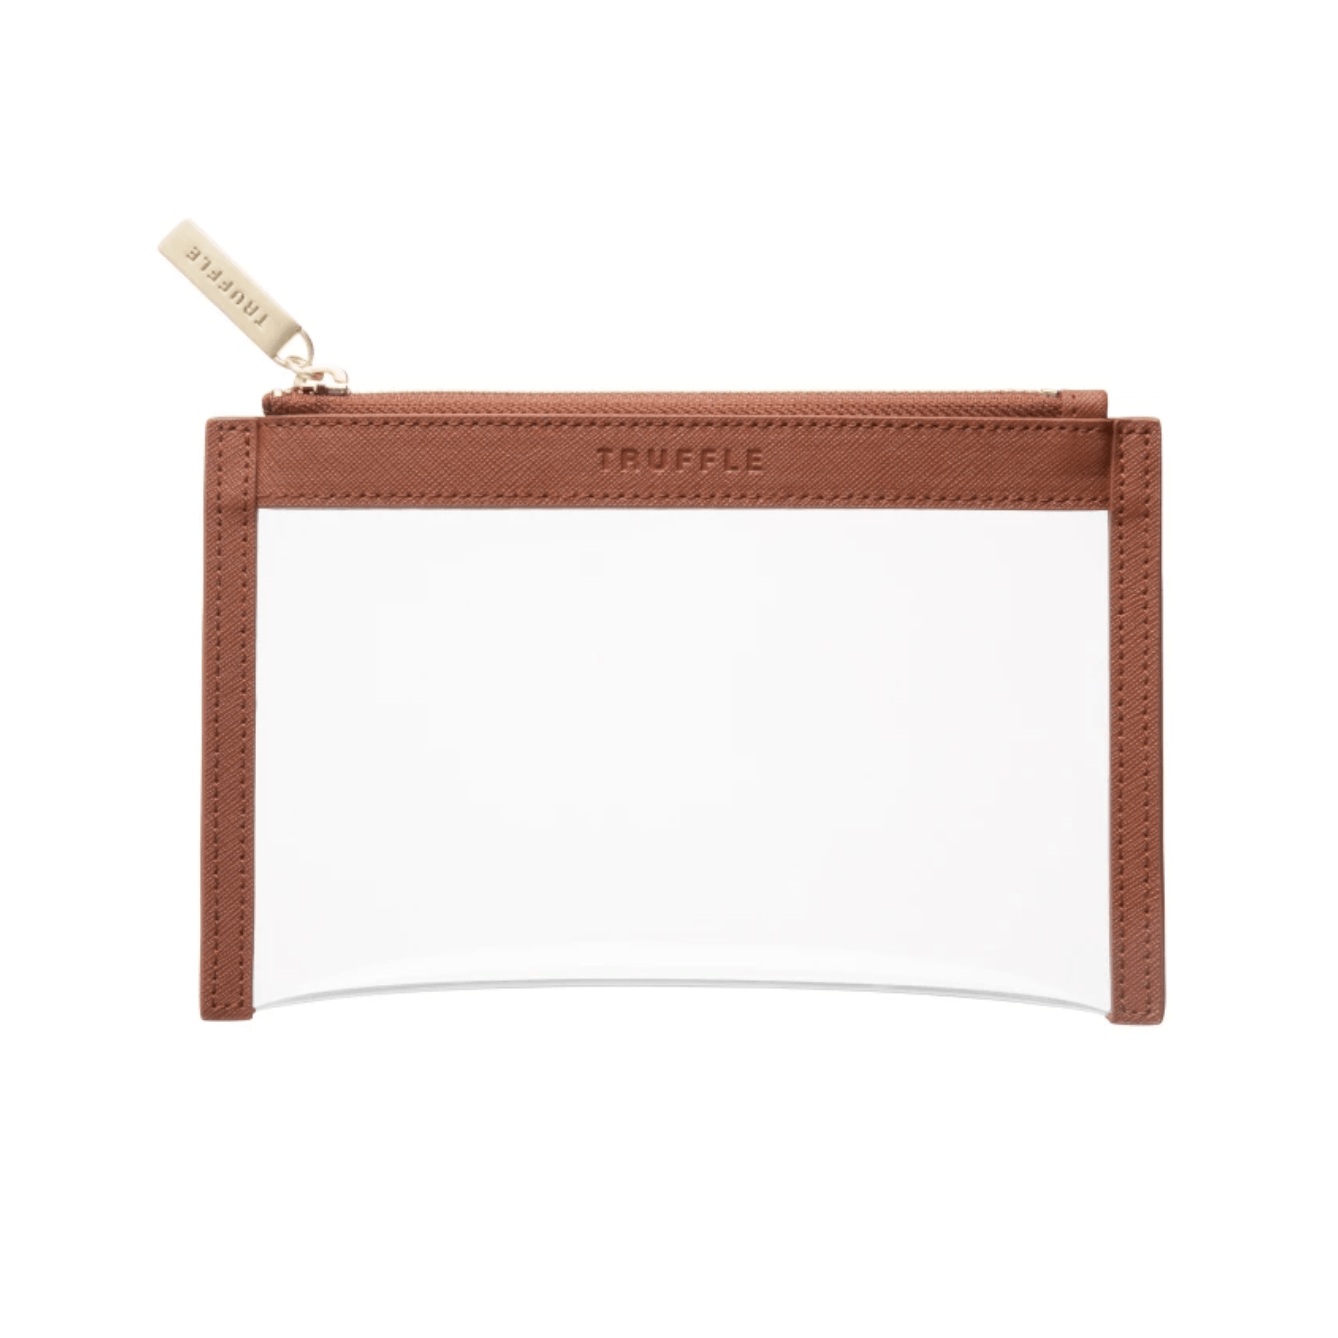 Clarity Clutch Mini / Neighborhood Goods